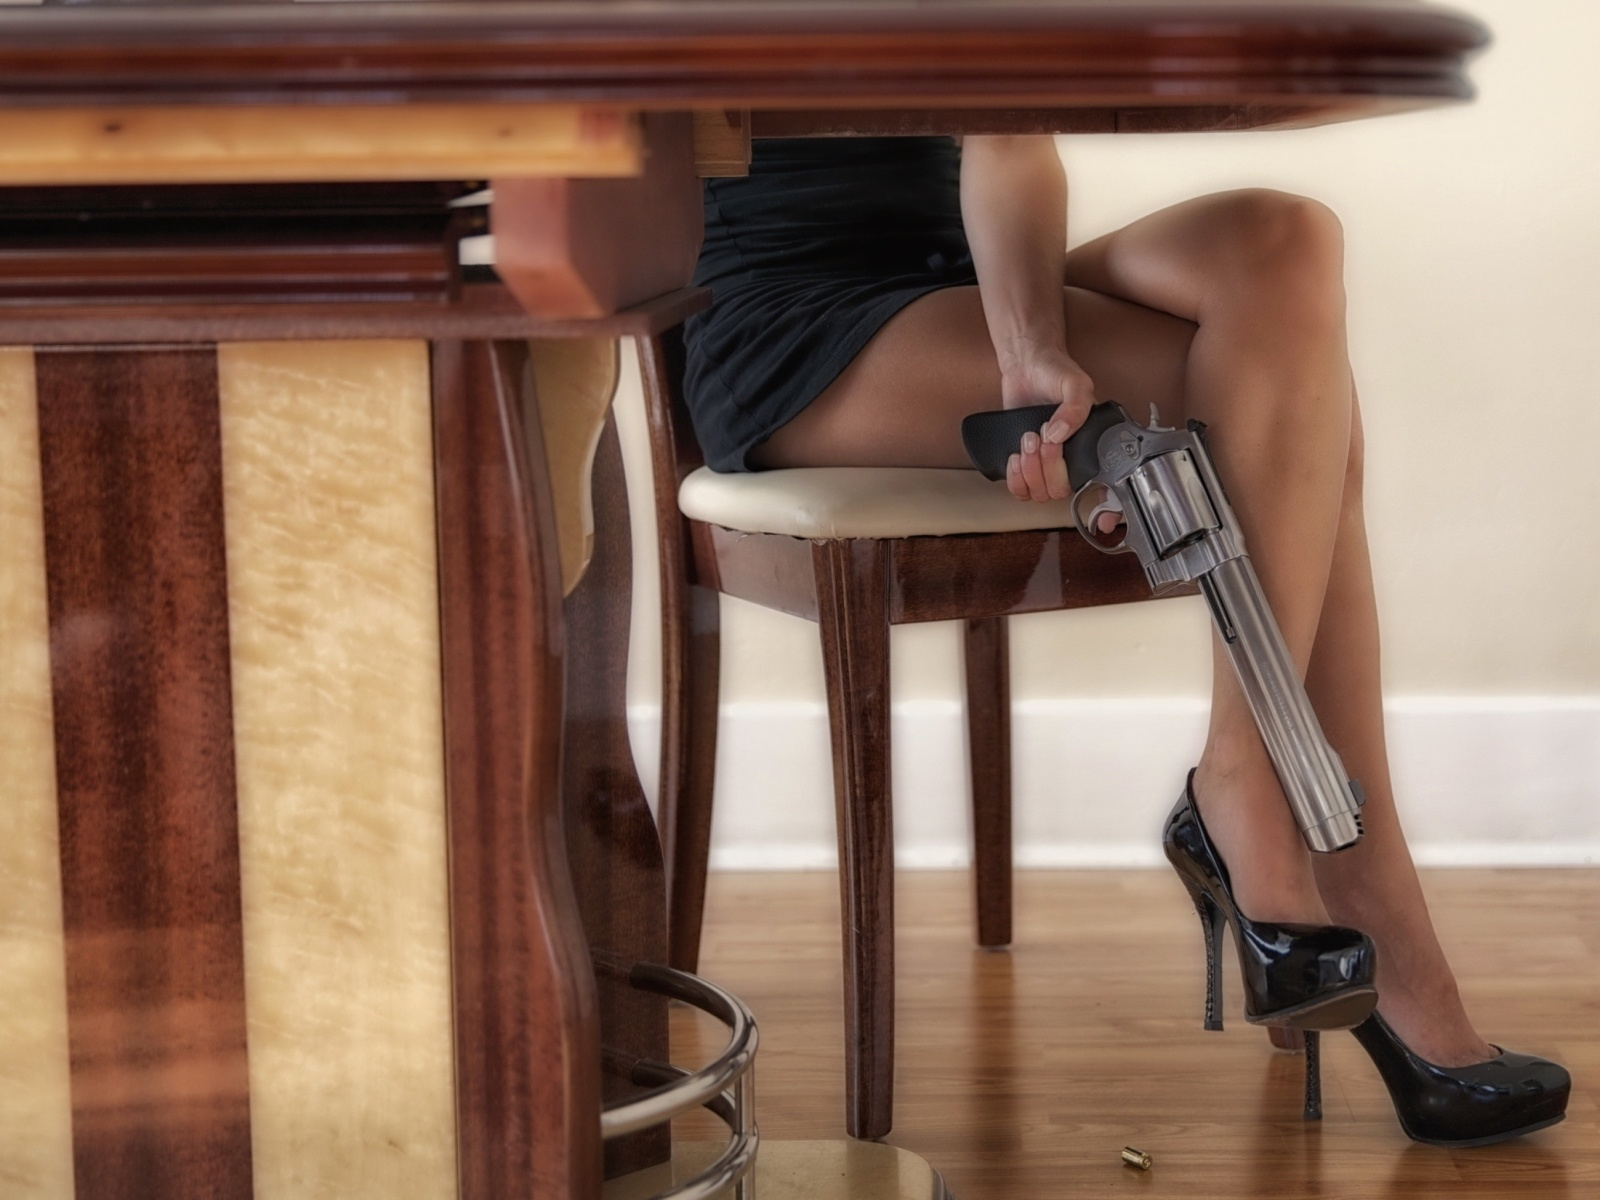 Girls Legs and Revolver screenshot #1 1600x1200